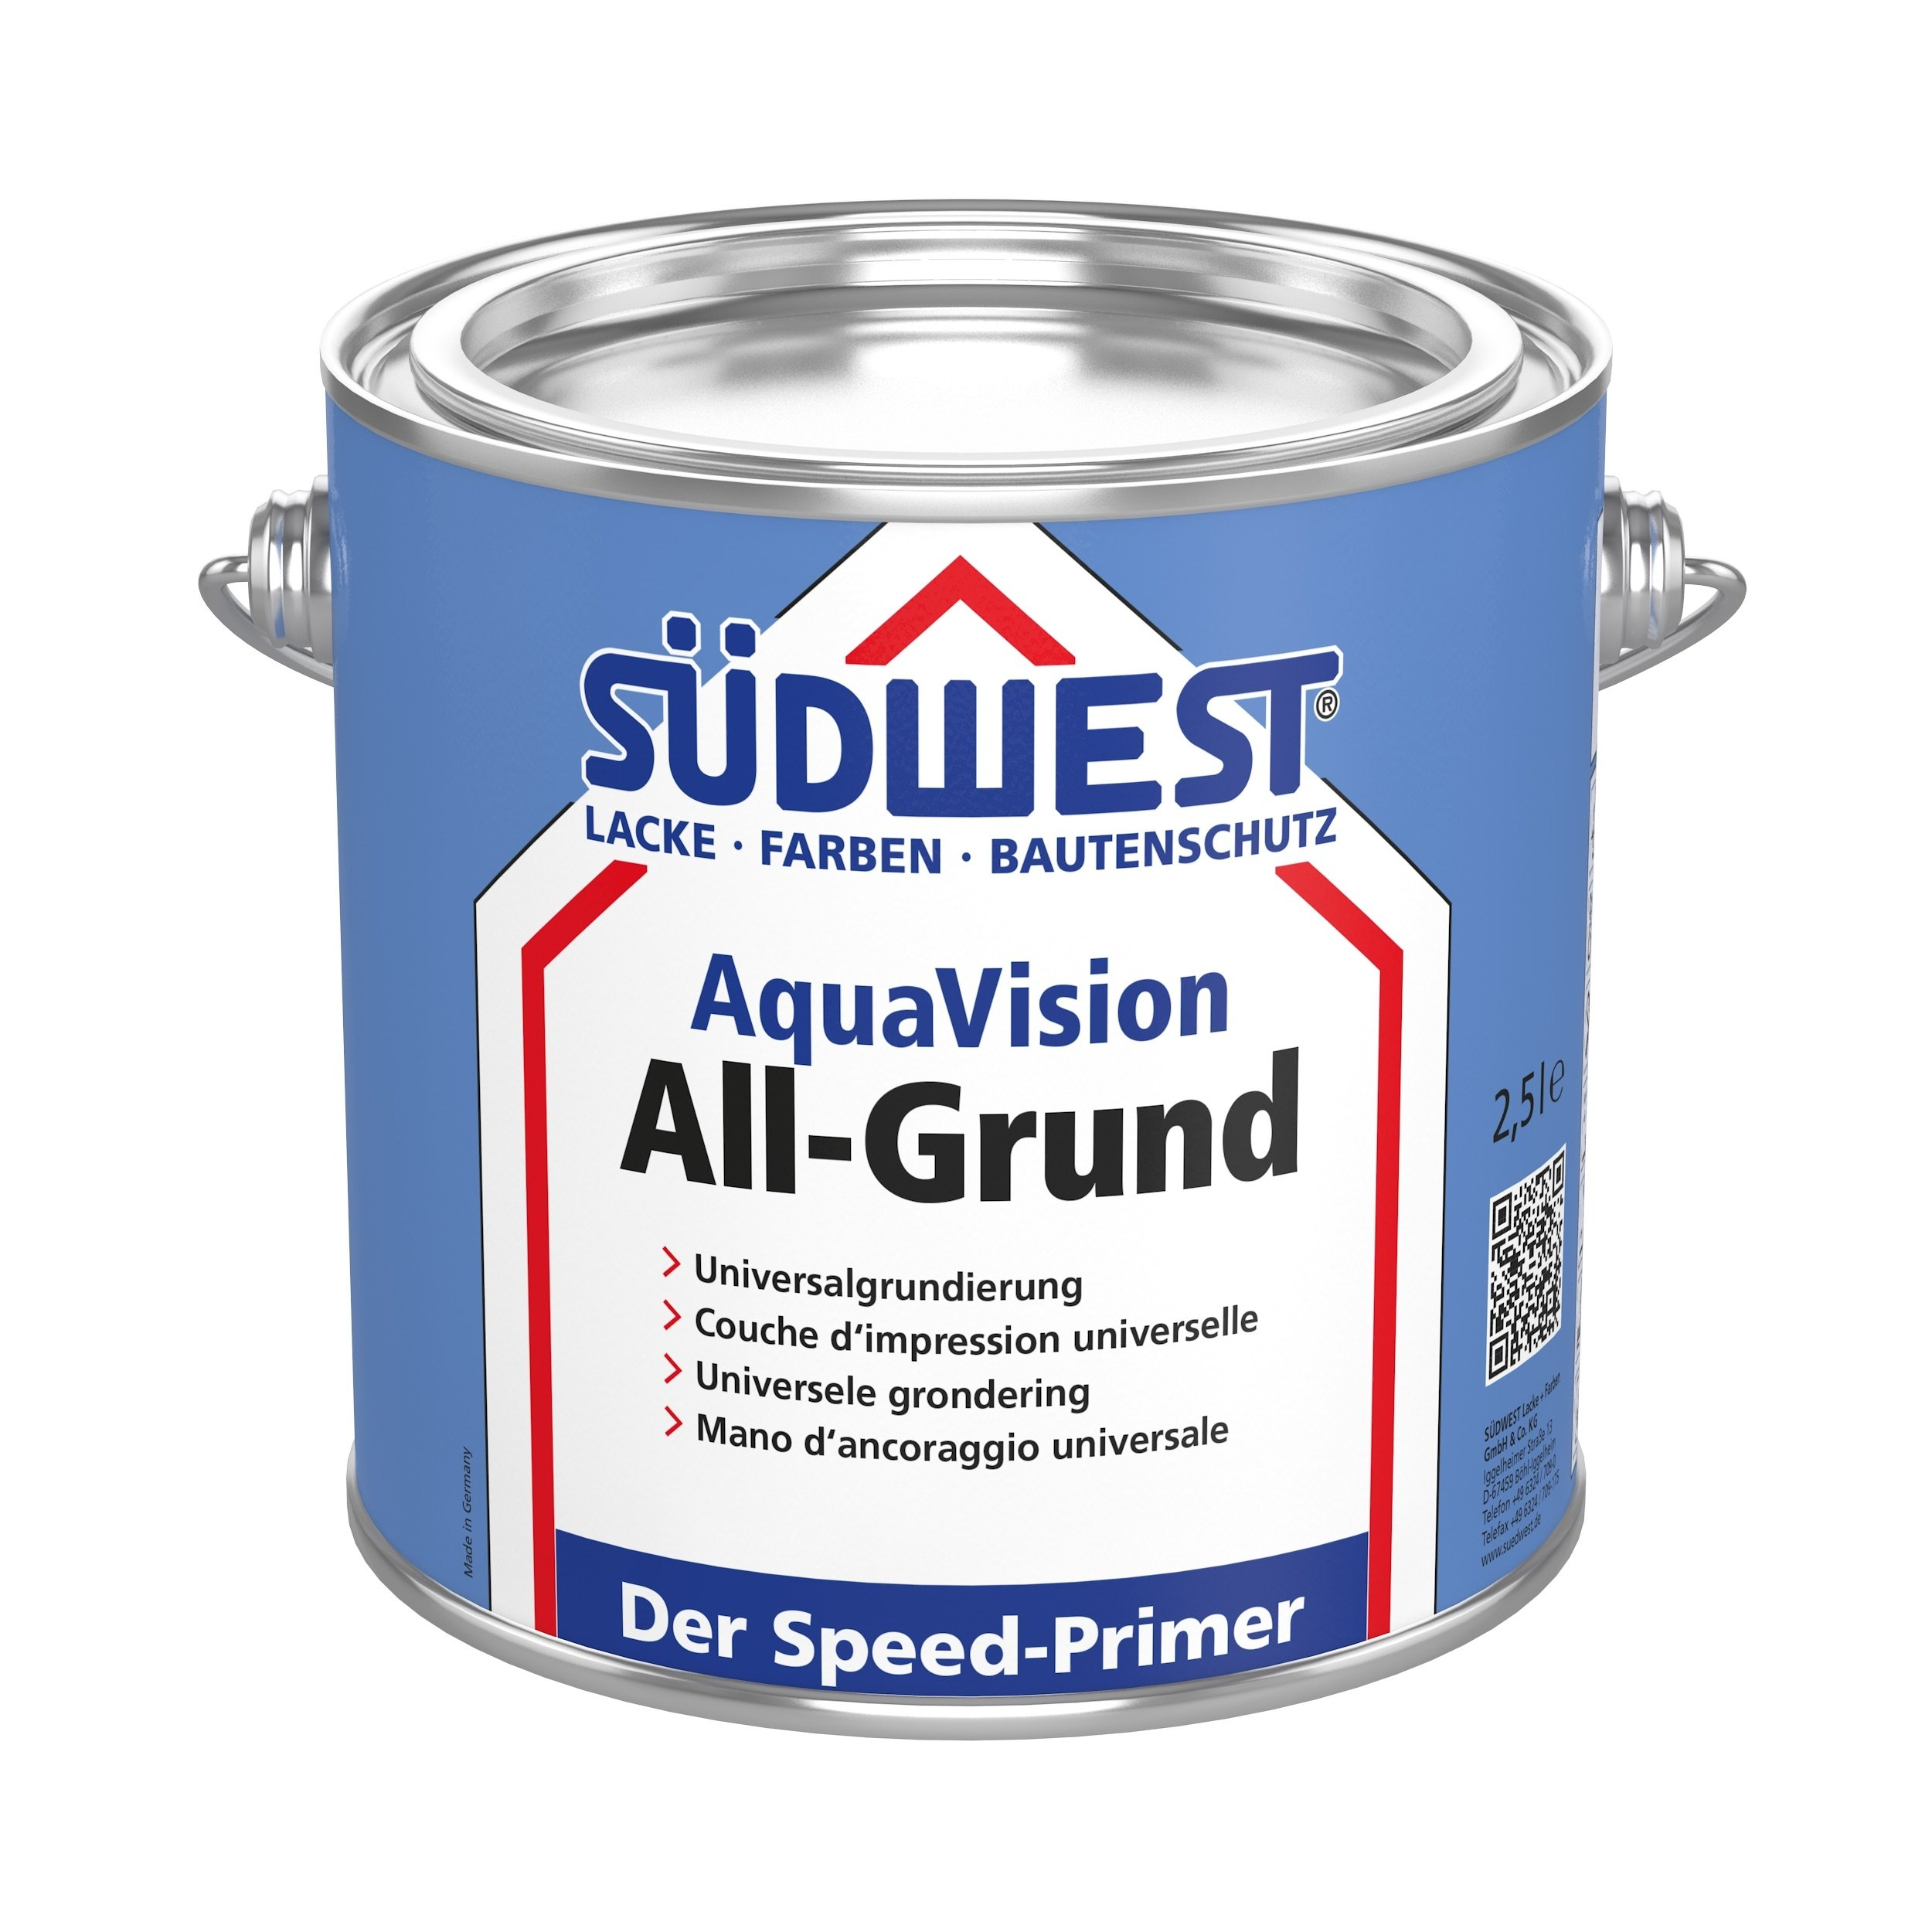 AquaVision All-Grund sort 0,375 L